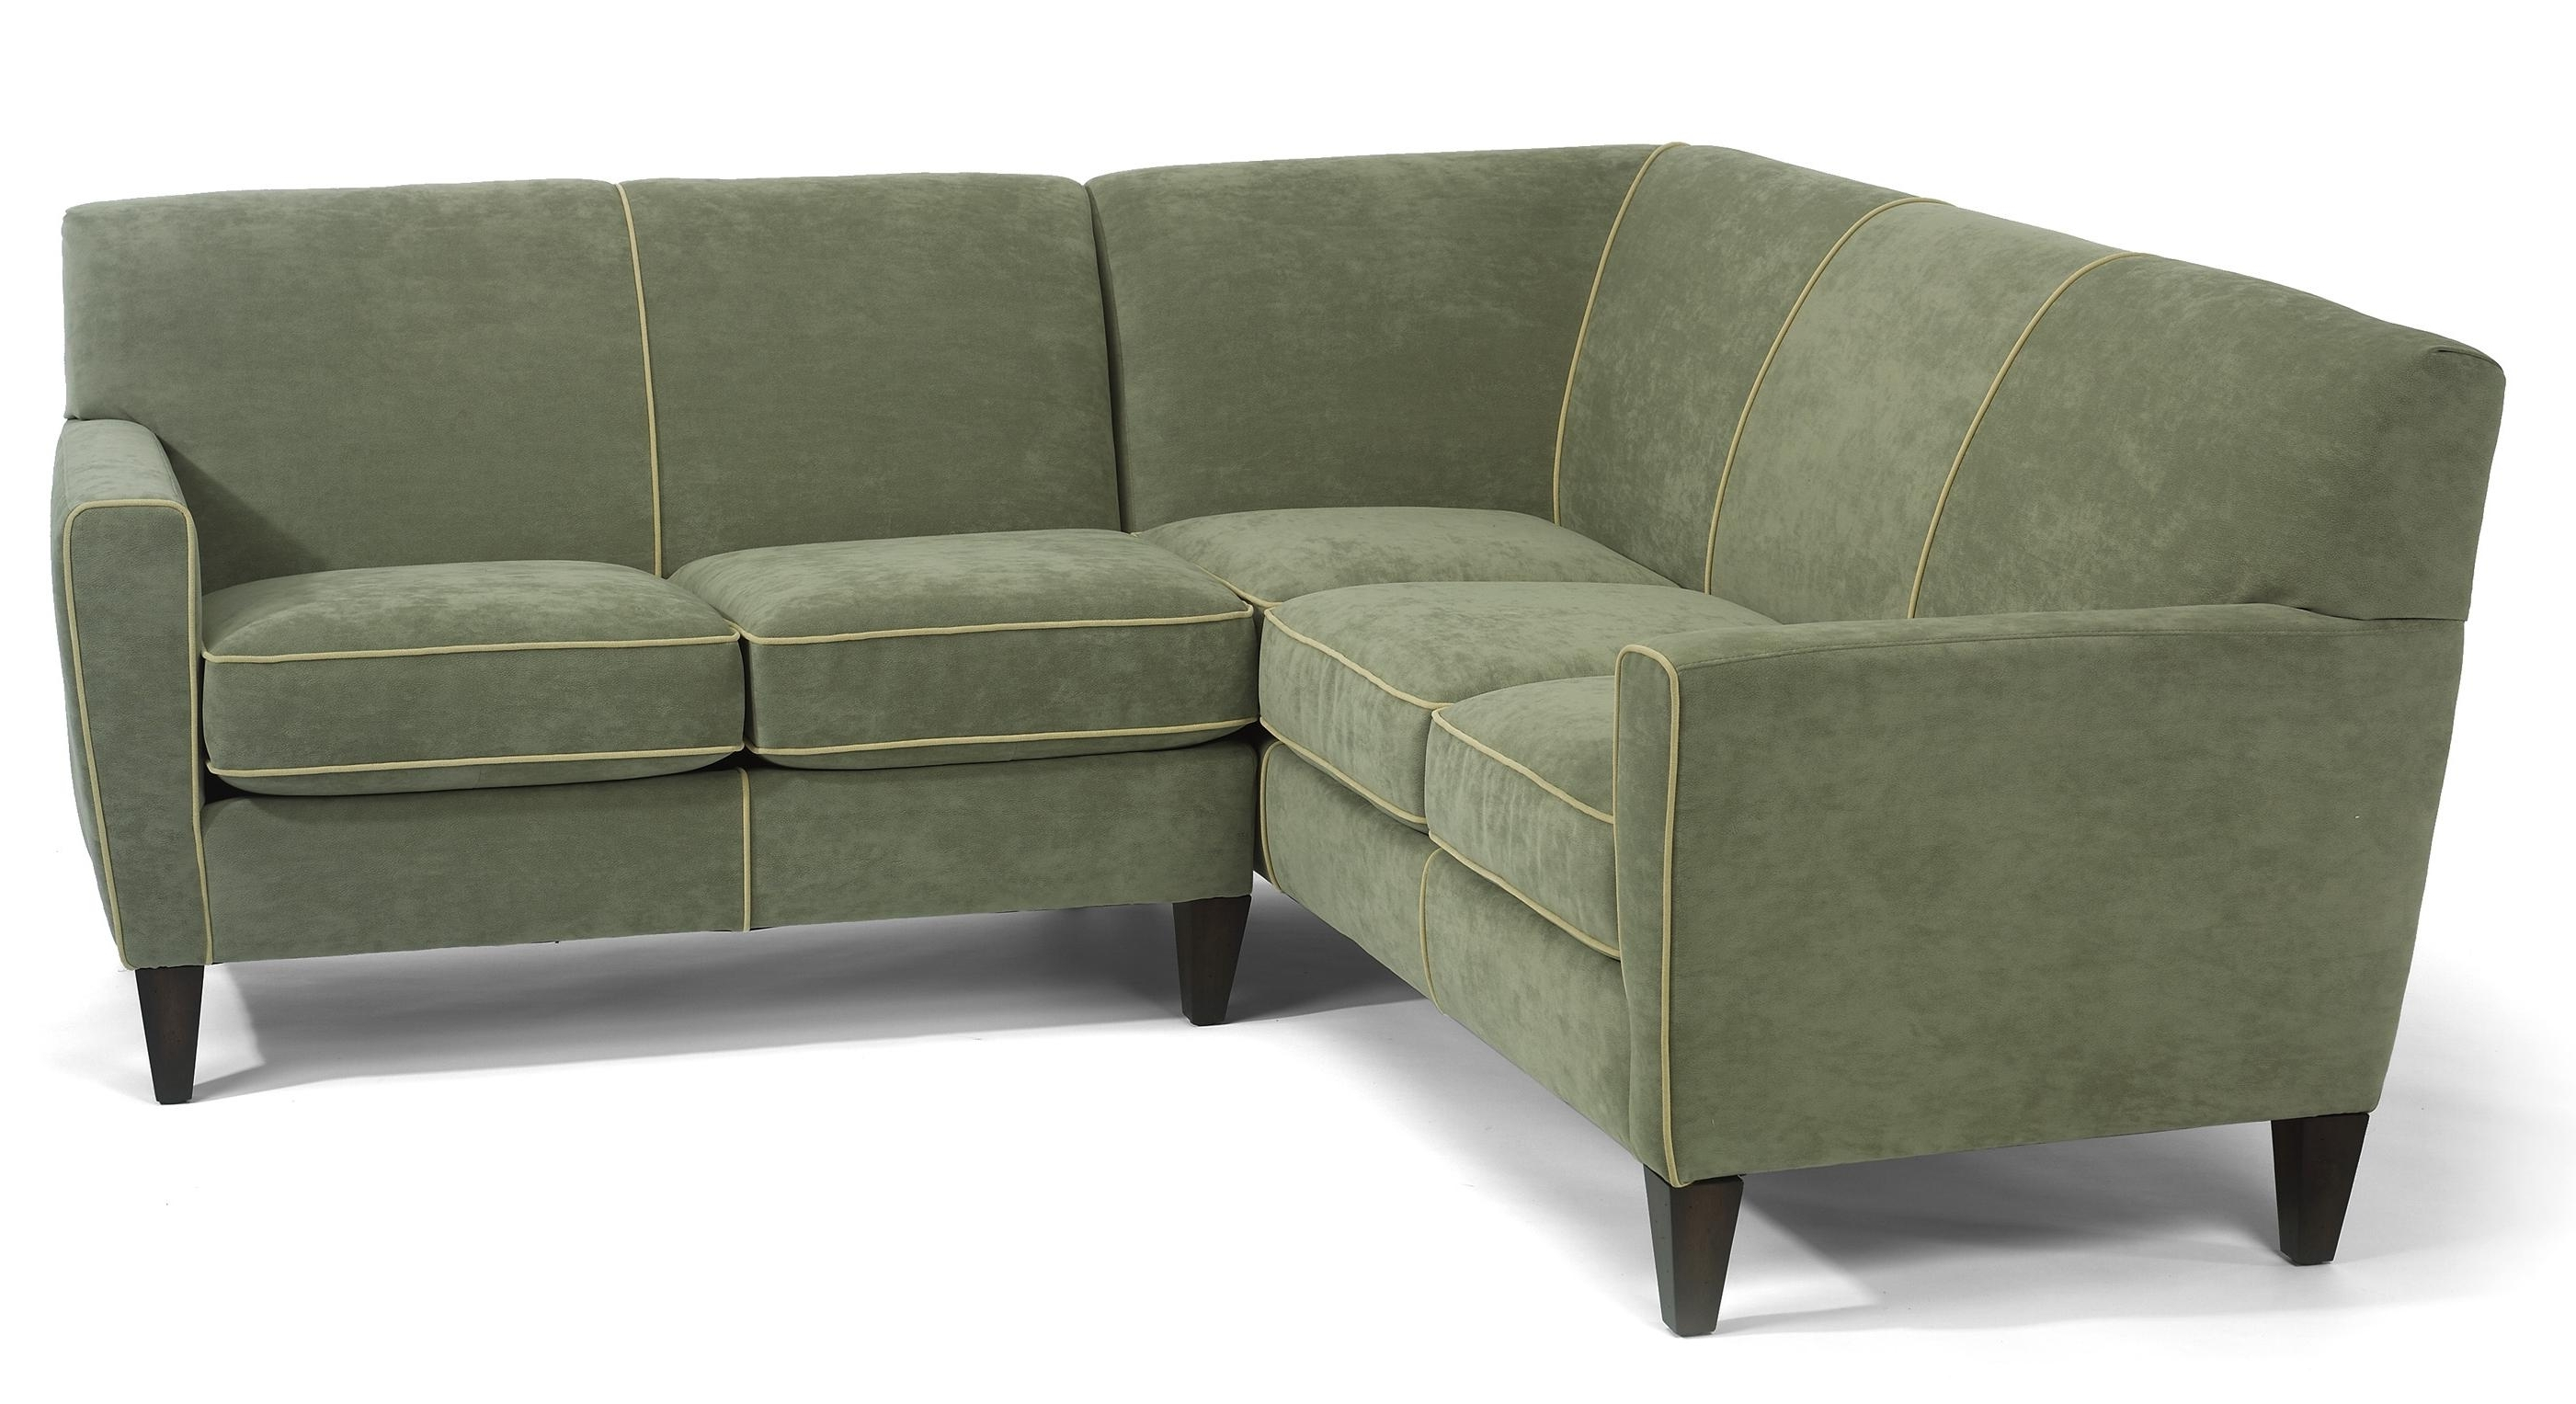 St Louis Sectional Sofas Inside Well Liked Flexsteel Digby Contemporary L Shape Sectional Sofa – Ahfa – Sofa (View 12 of 20)